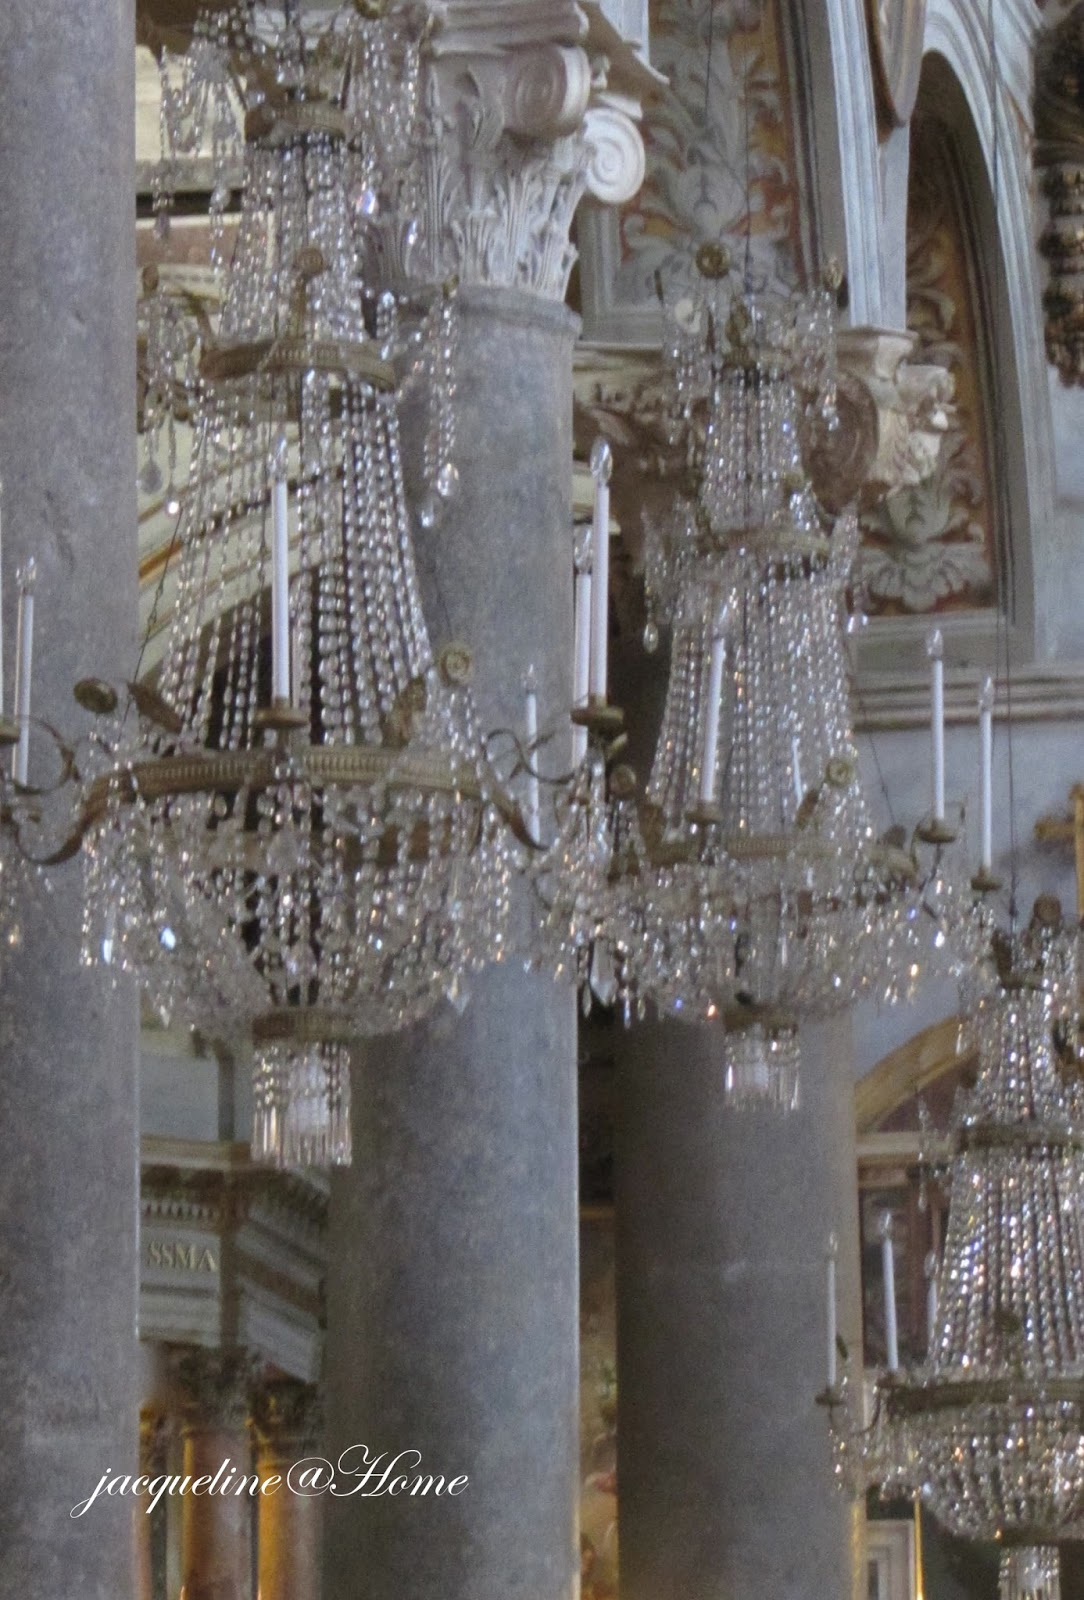 Home im gonna swing from the chandelier church of santa maria in aracoeli rome sparkling chandeliers as far as the eye can see a beautiful sight they hang from every arch arubaitofo Choice Image